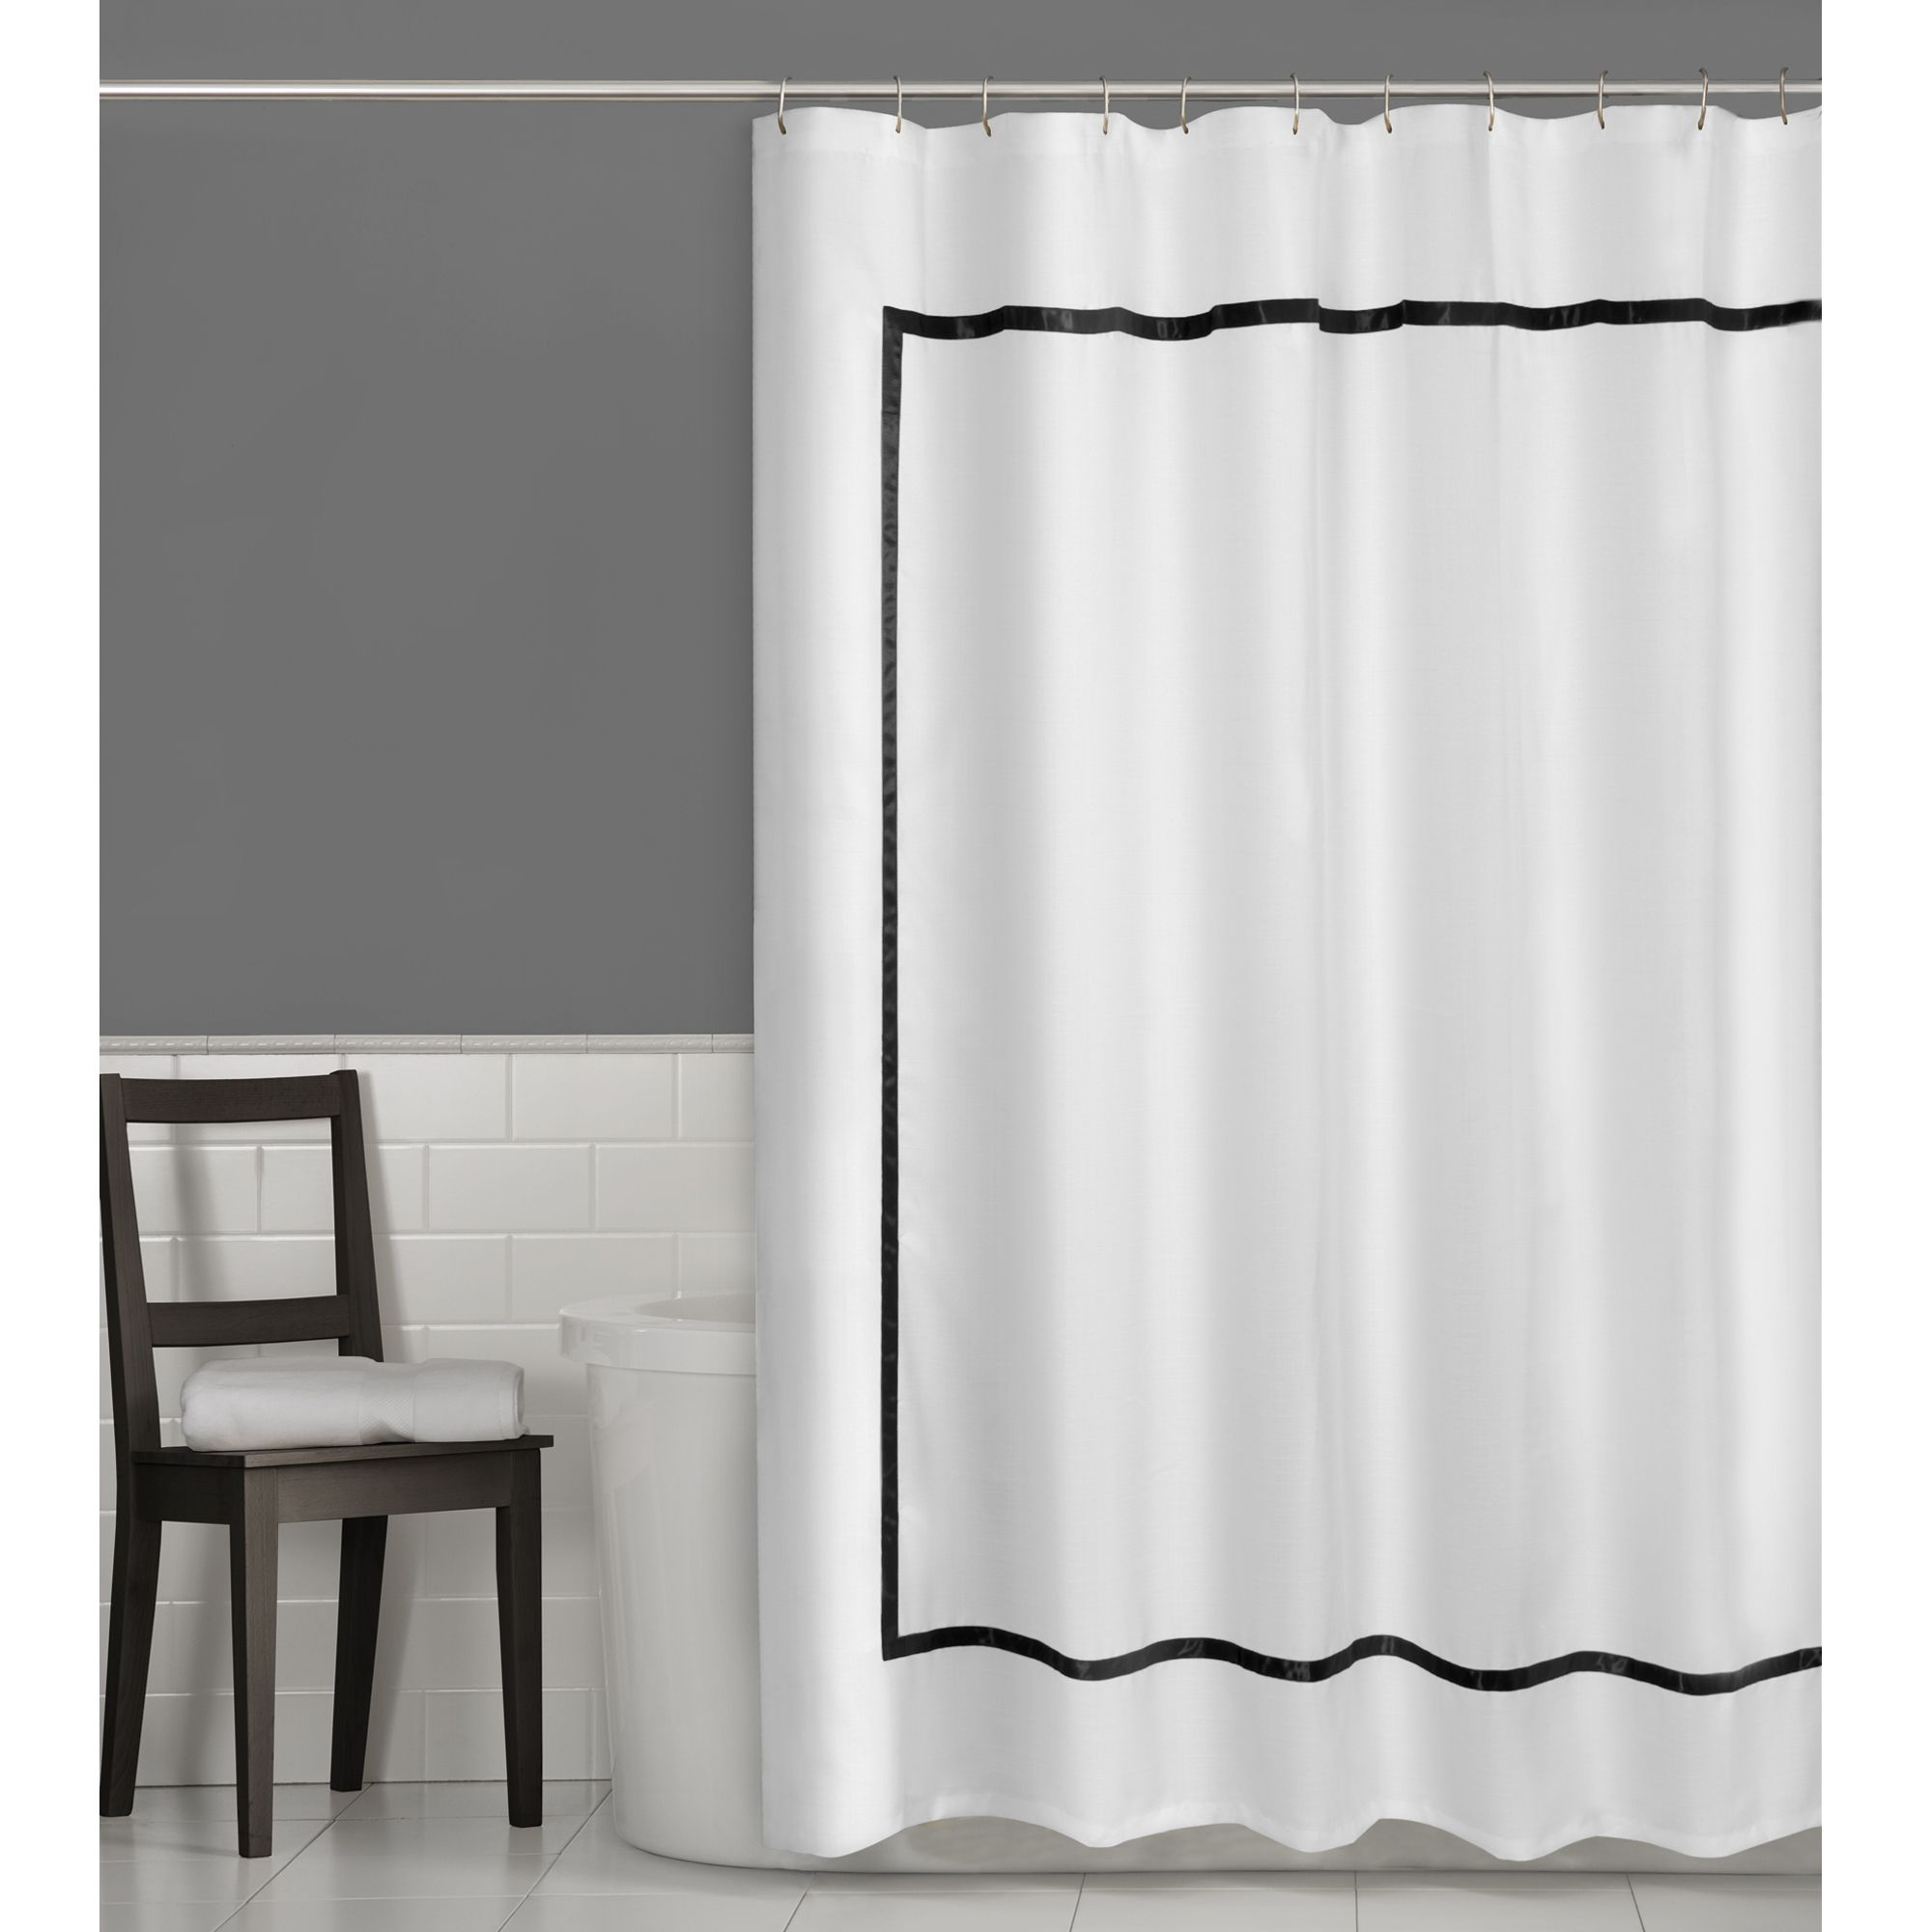 This Luxury Hotel Style Shower Curtain Features A Grosgrain Border That Will Accentuate Your Bathroom Decor